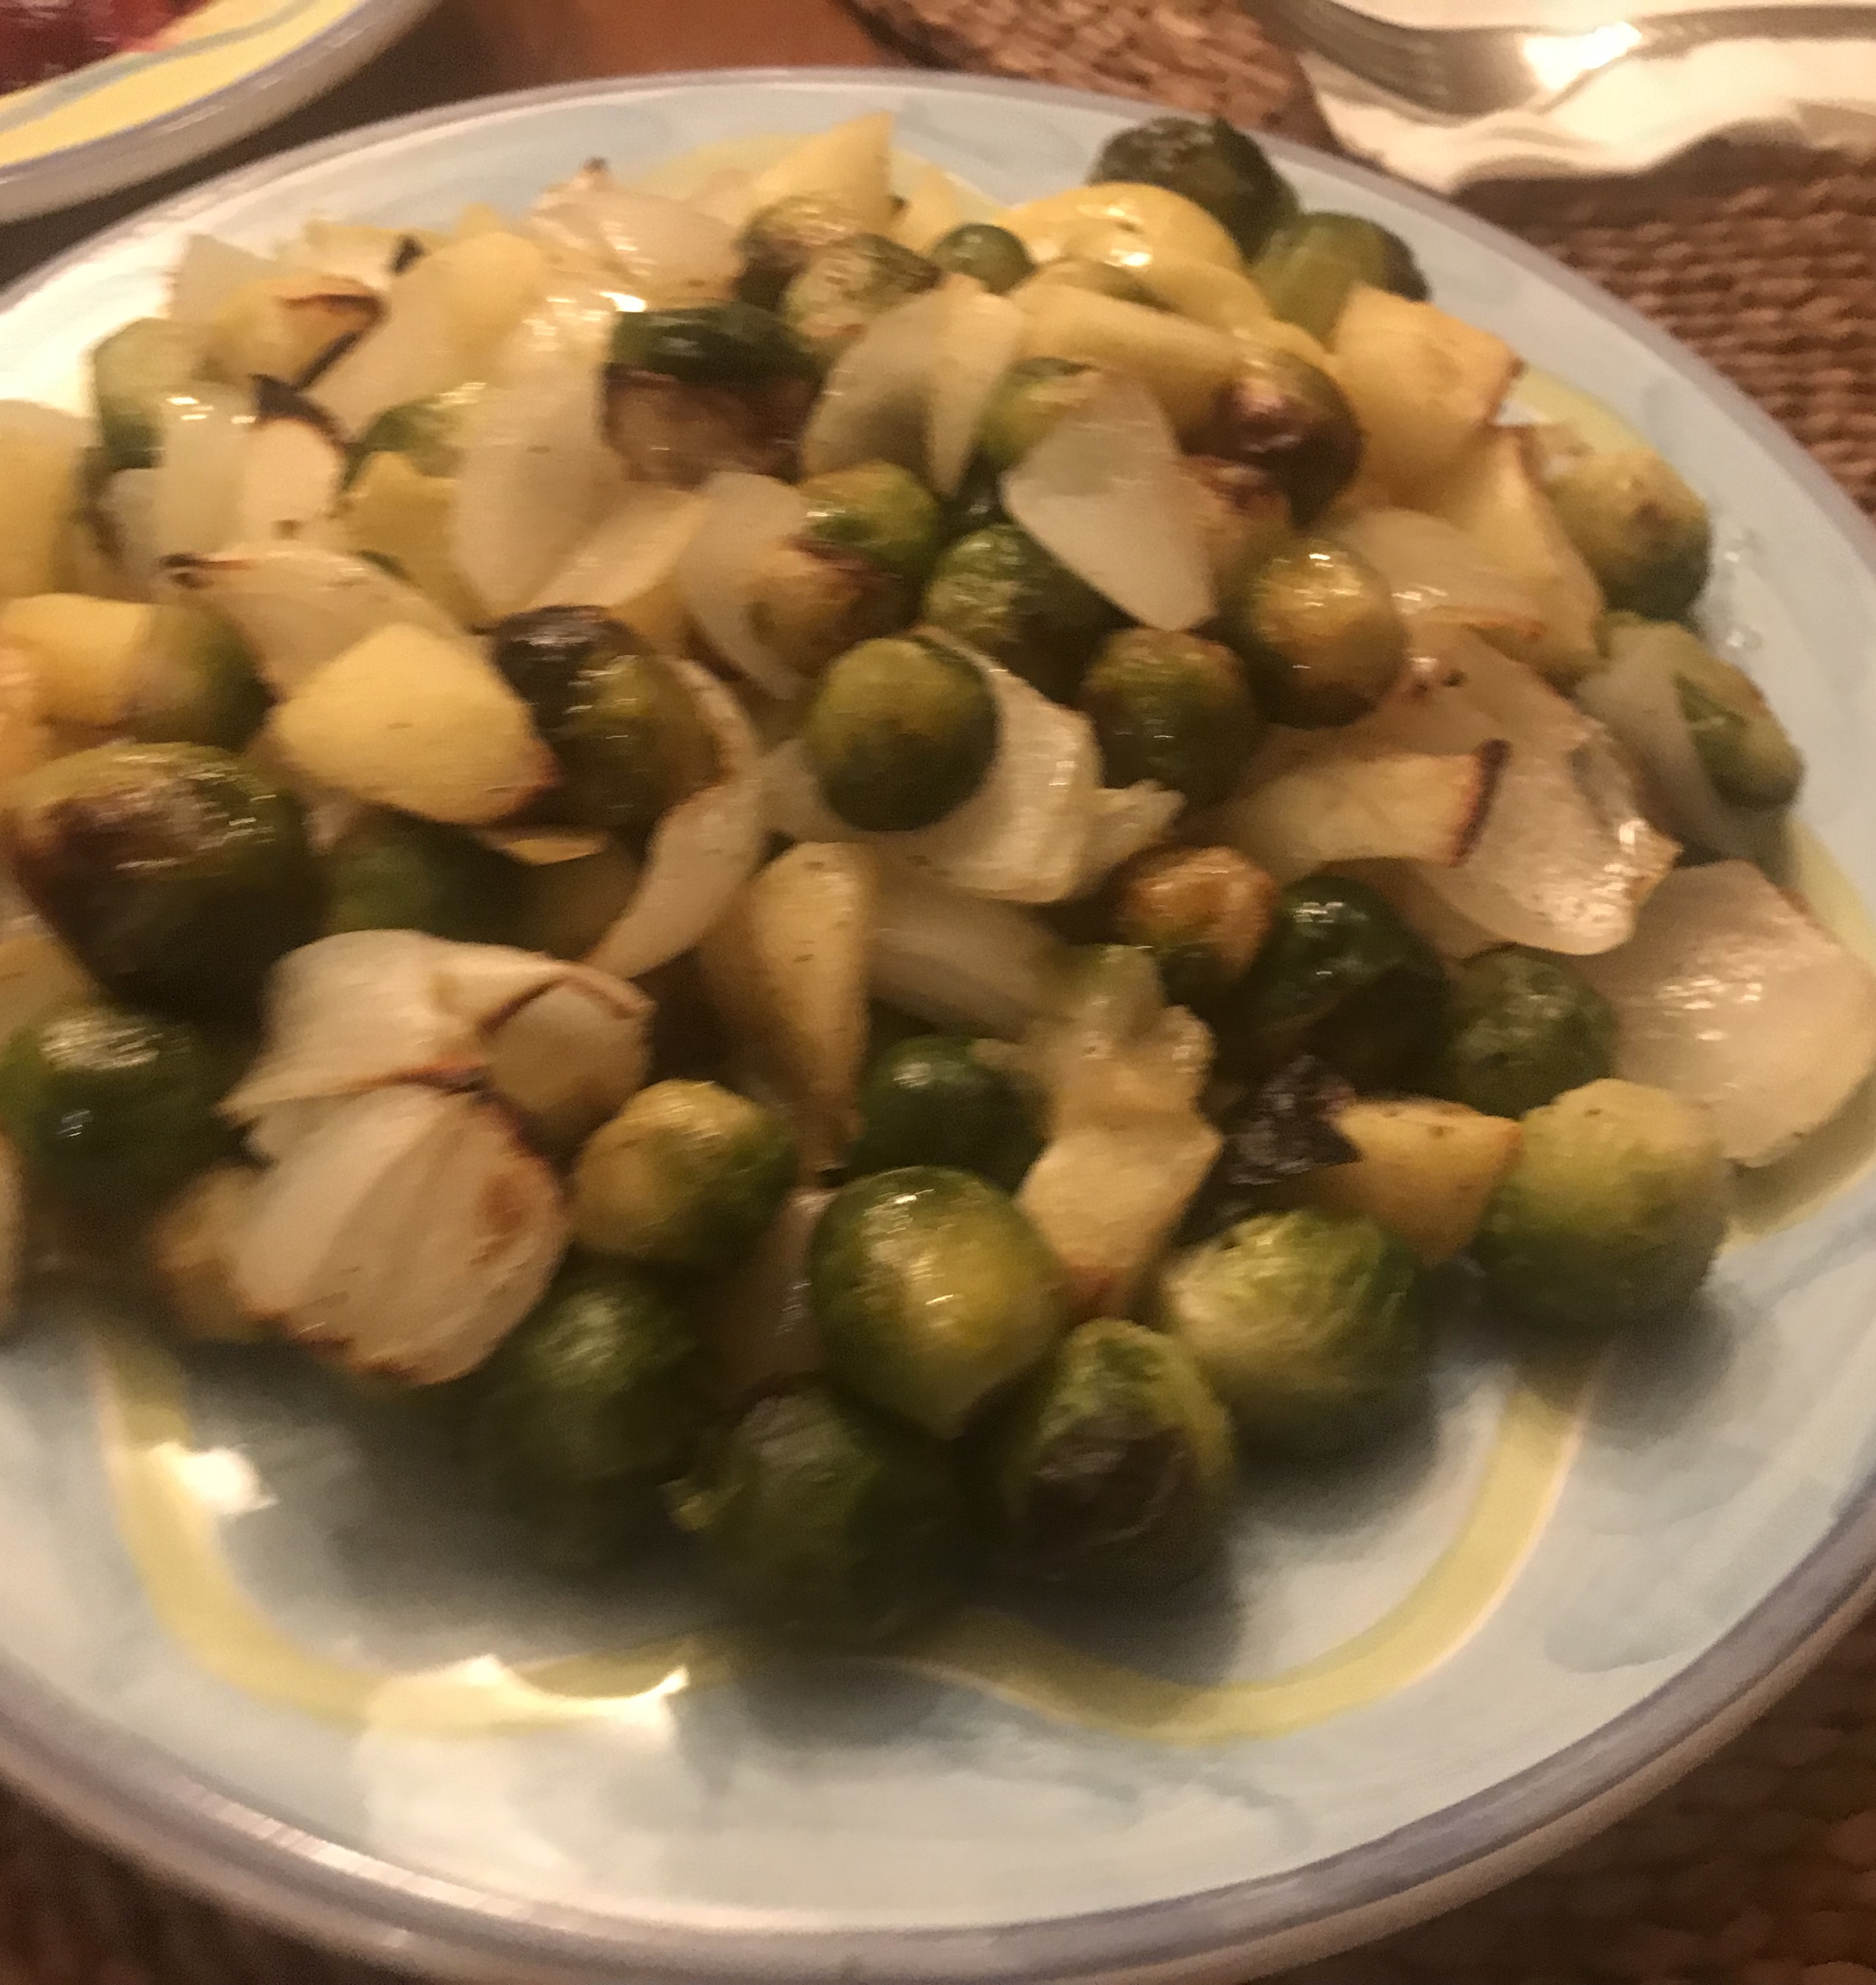 Roasted Apples and Brussels Sprouts leslie